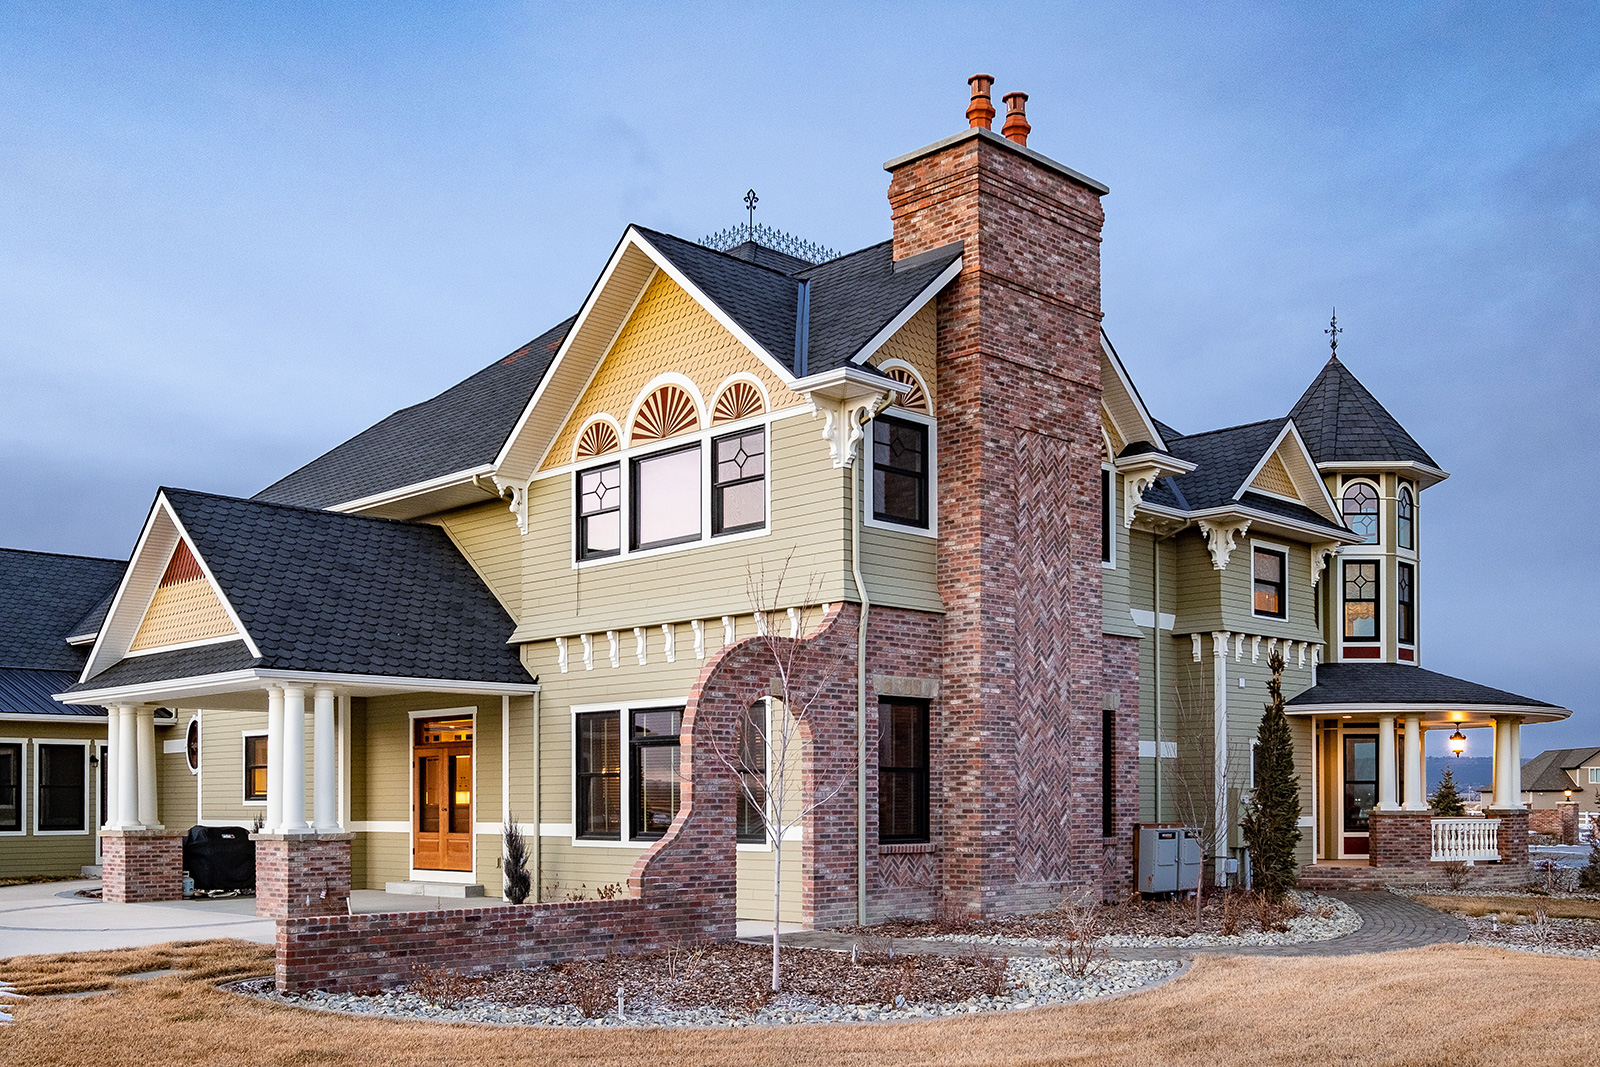 Vintage Home Construction Myers Custom Homes in Billings